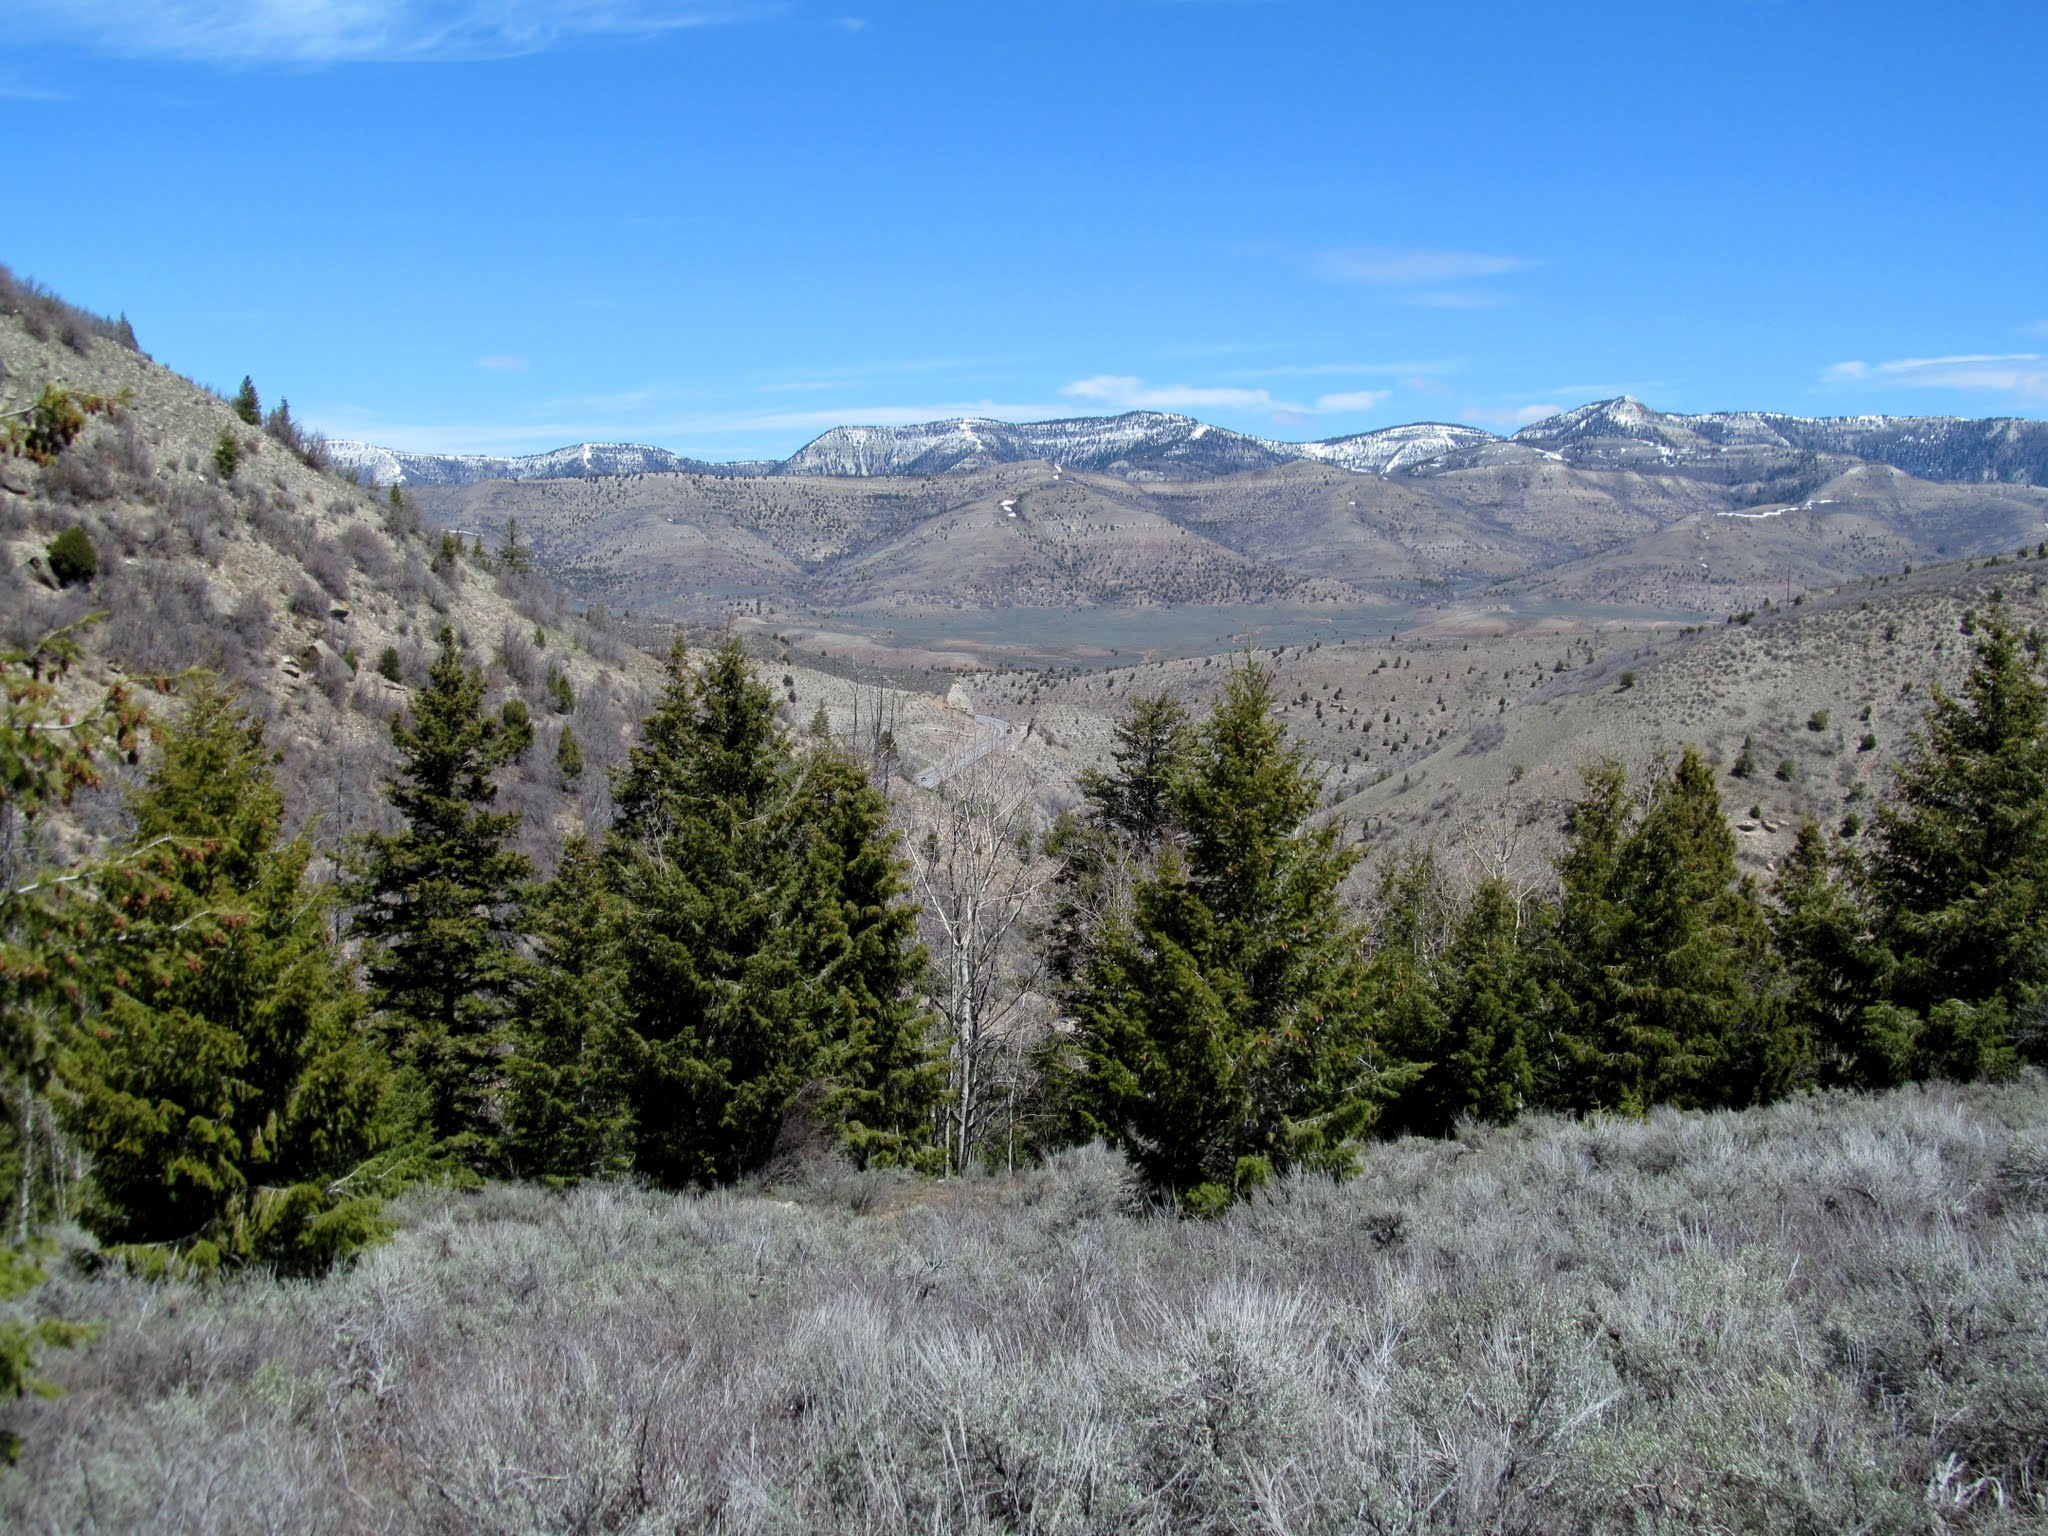 Photo: Upper Price Canyon with Reservation Ridge on the horizon